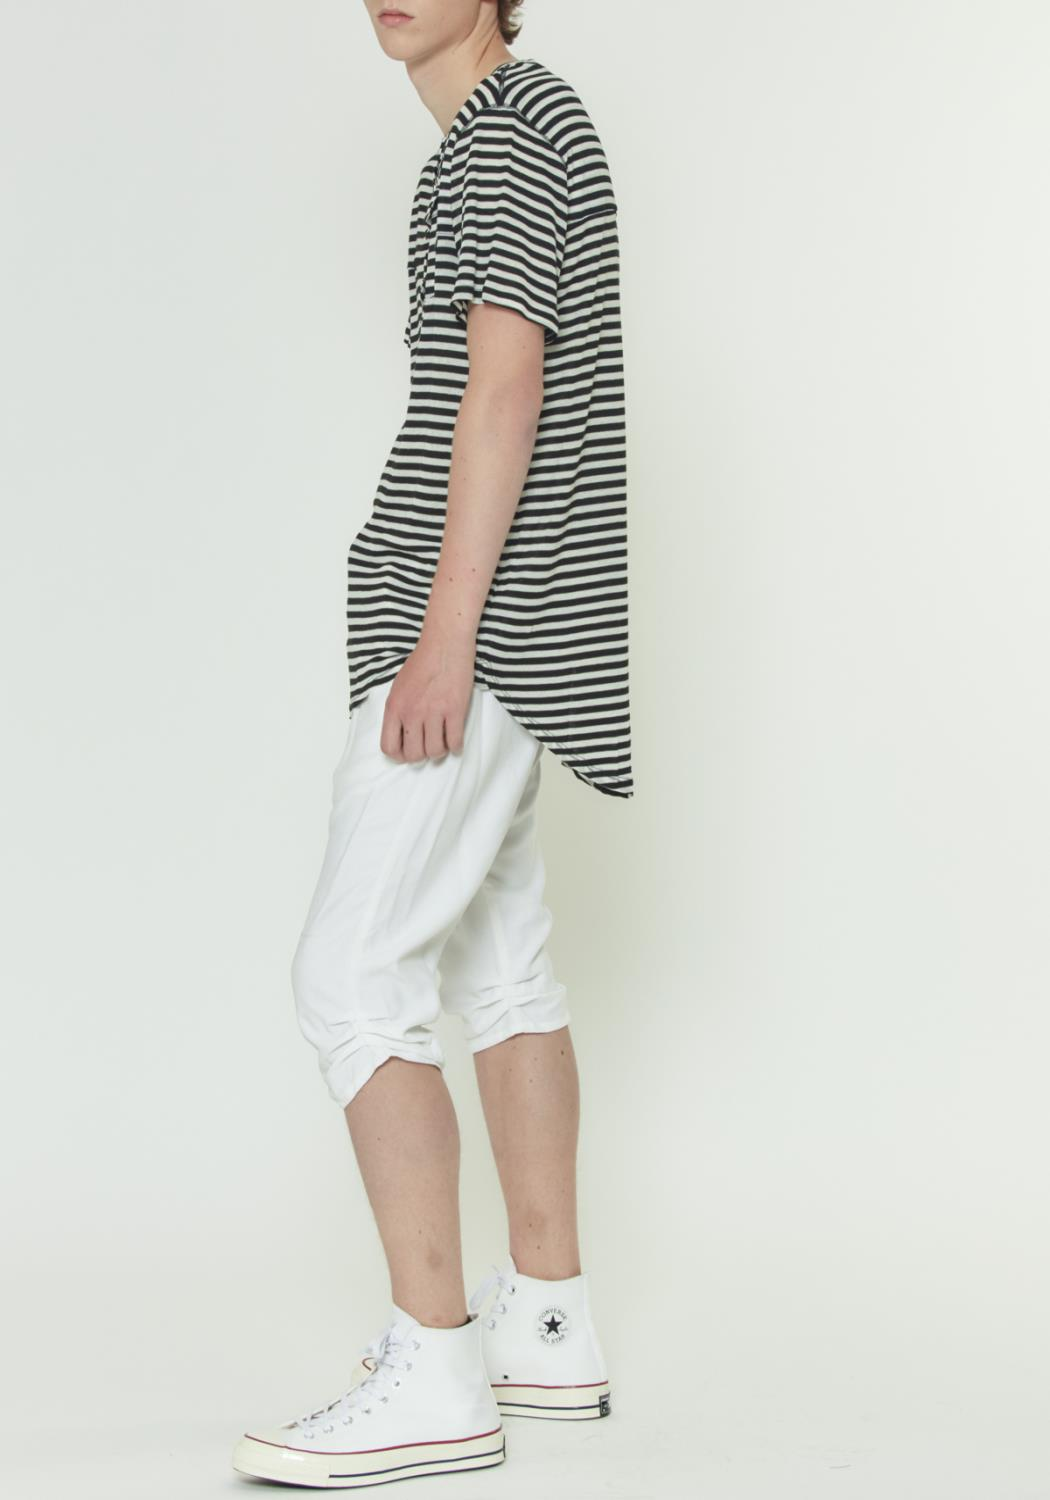 DROP CROTCH SHORTS WITH PLEATS